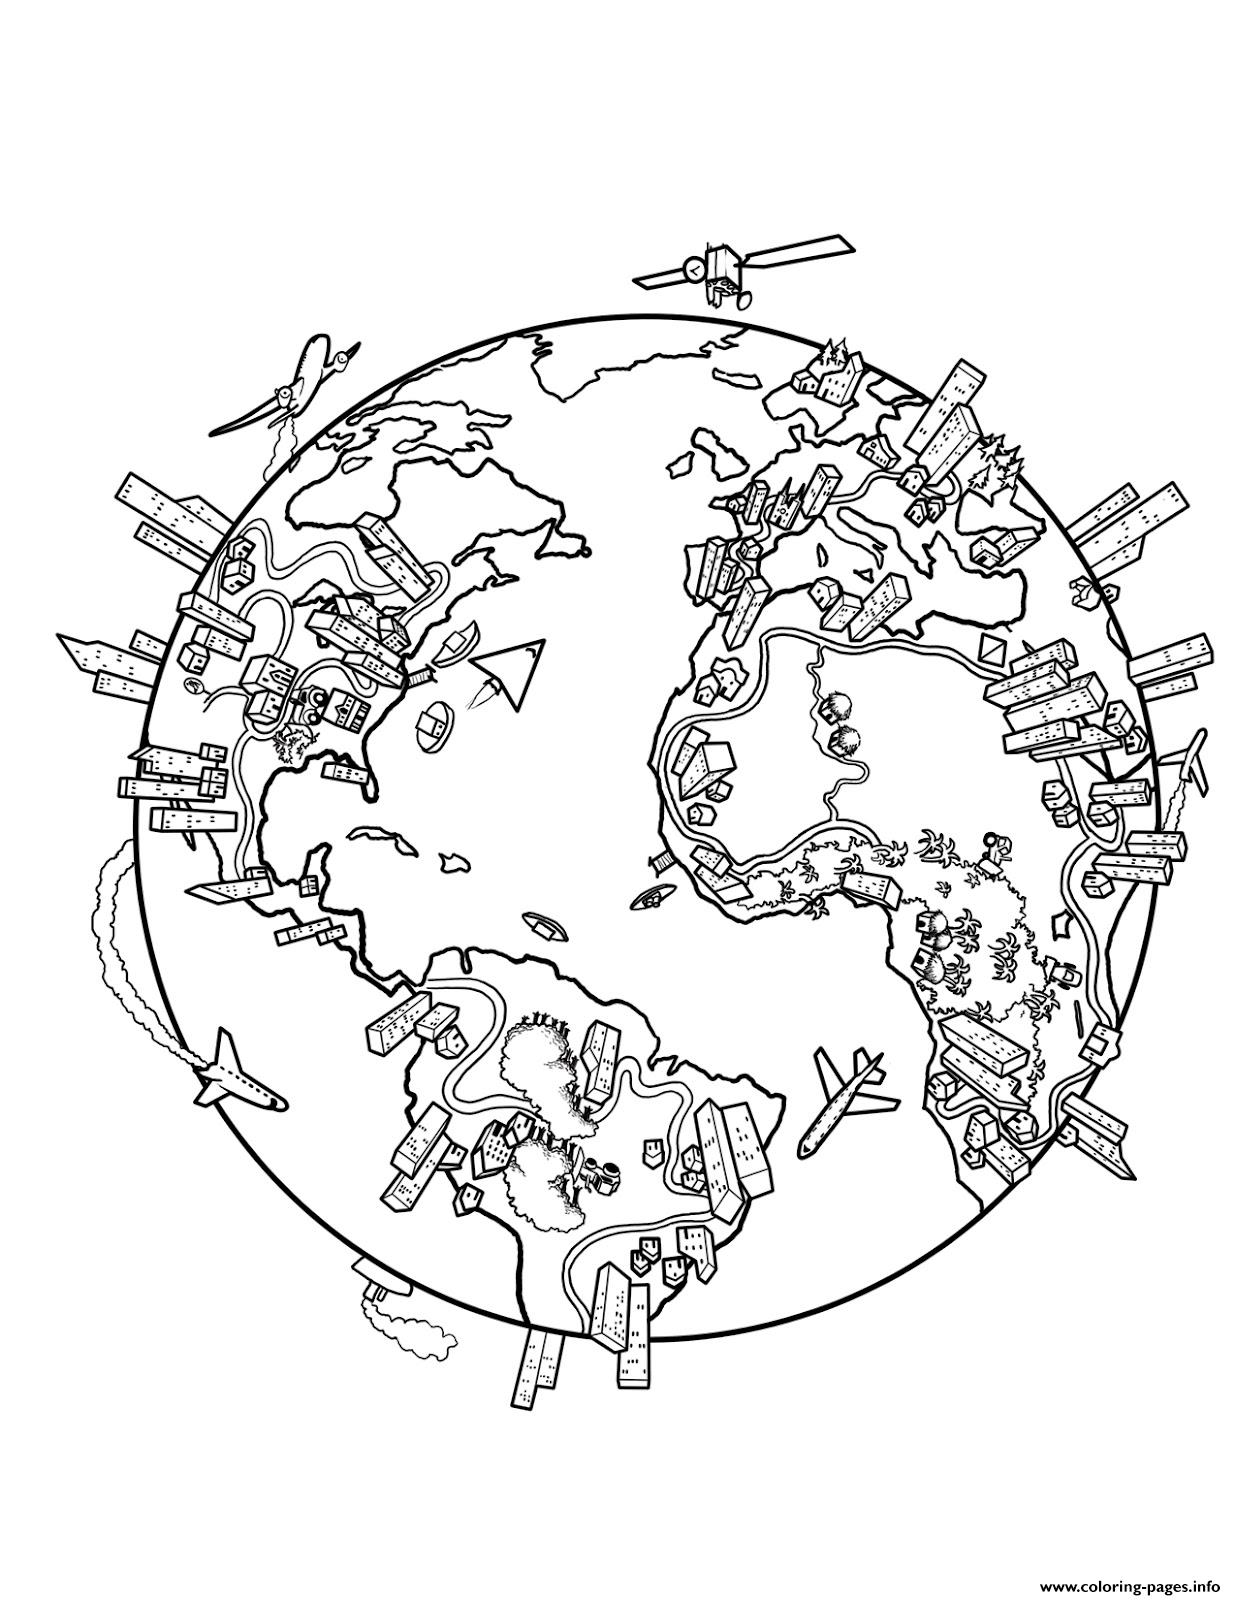 world coloring pages around the world coloring pages at getcoloringscom free coloring world pages